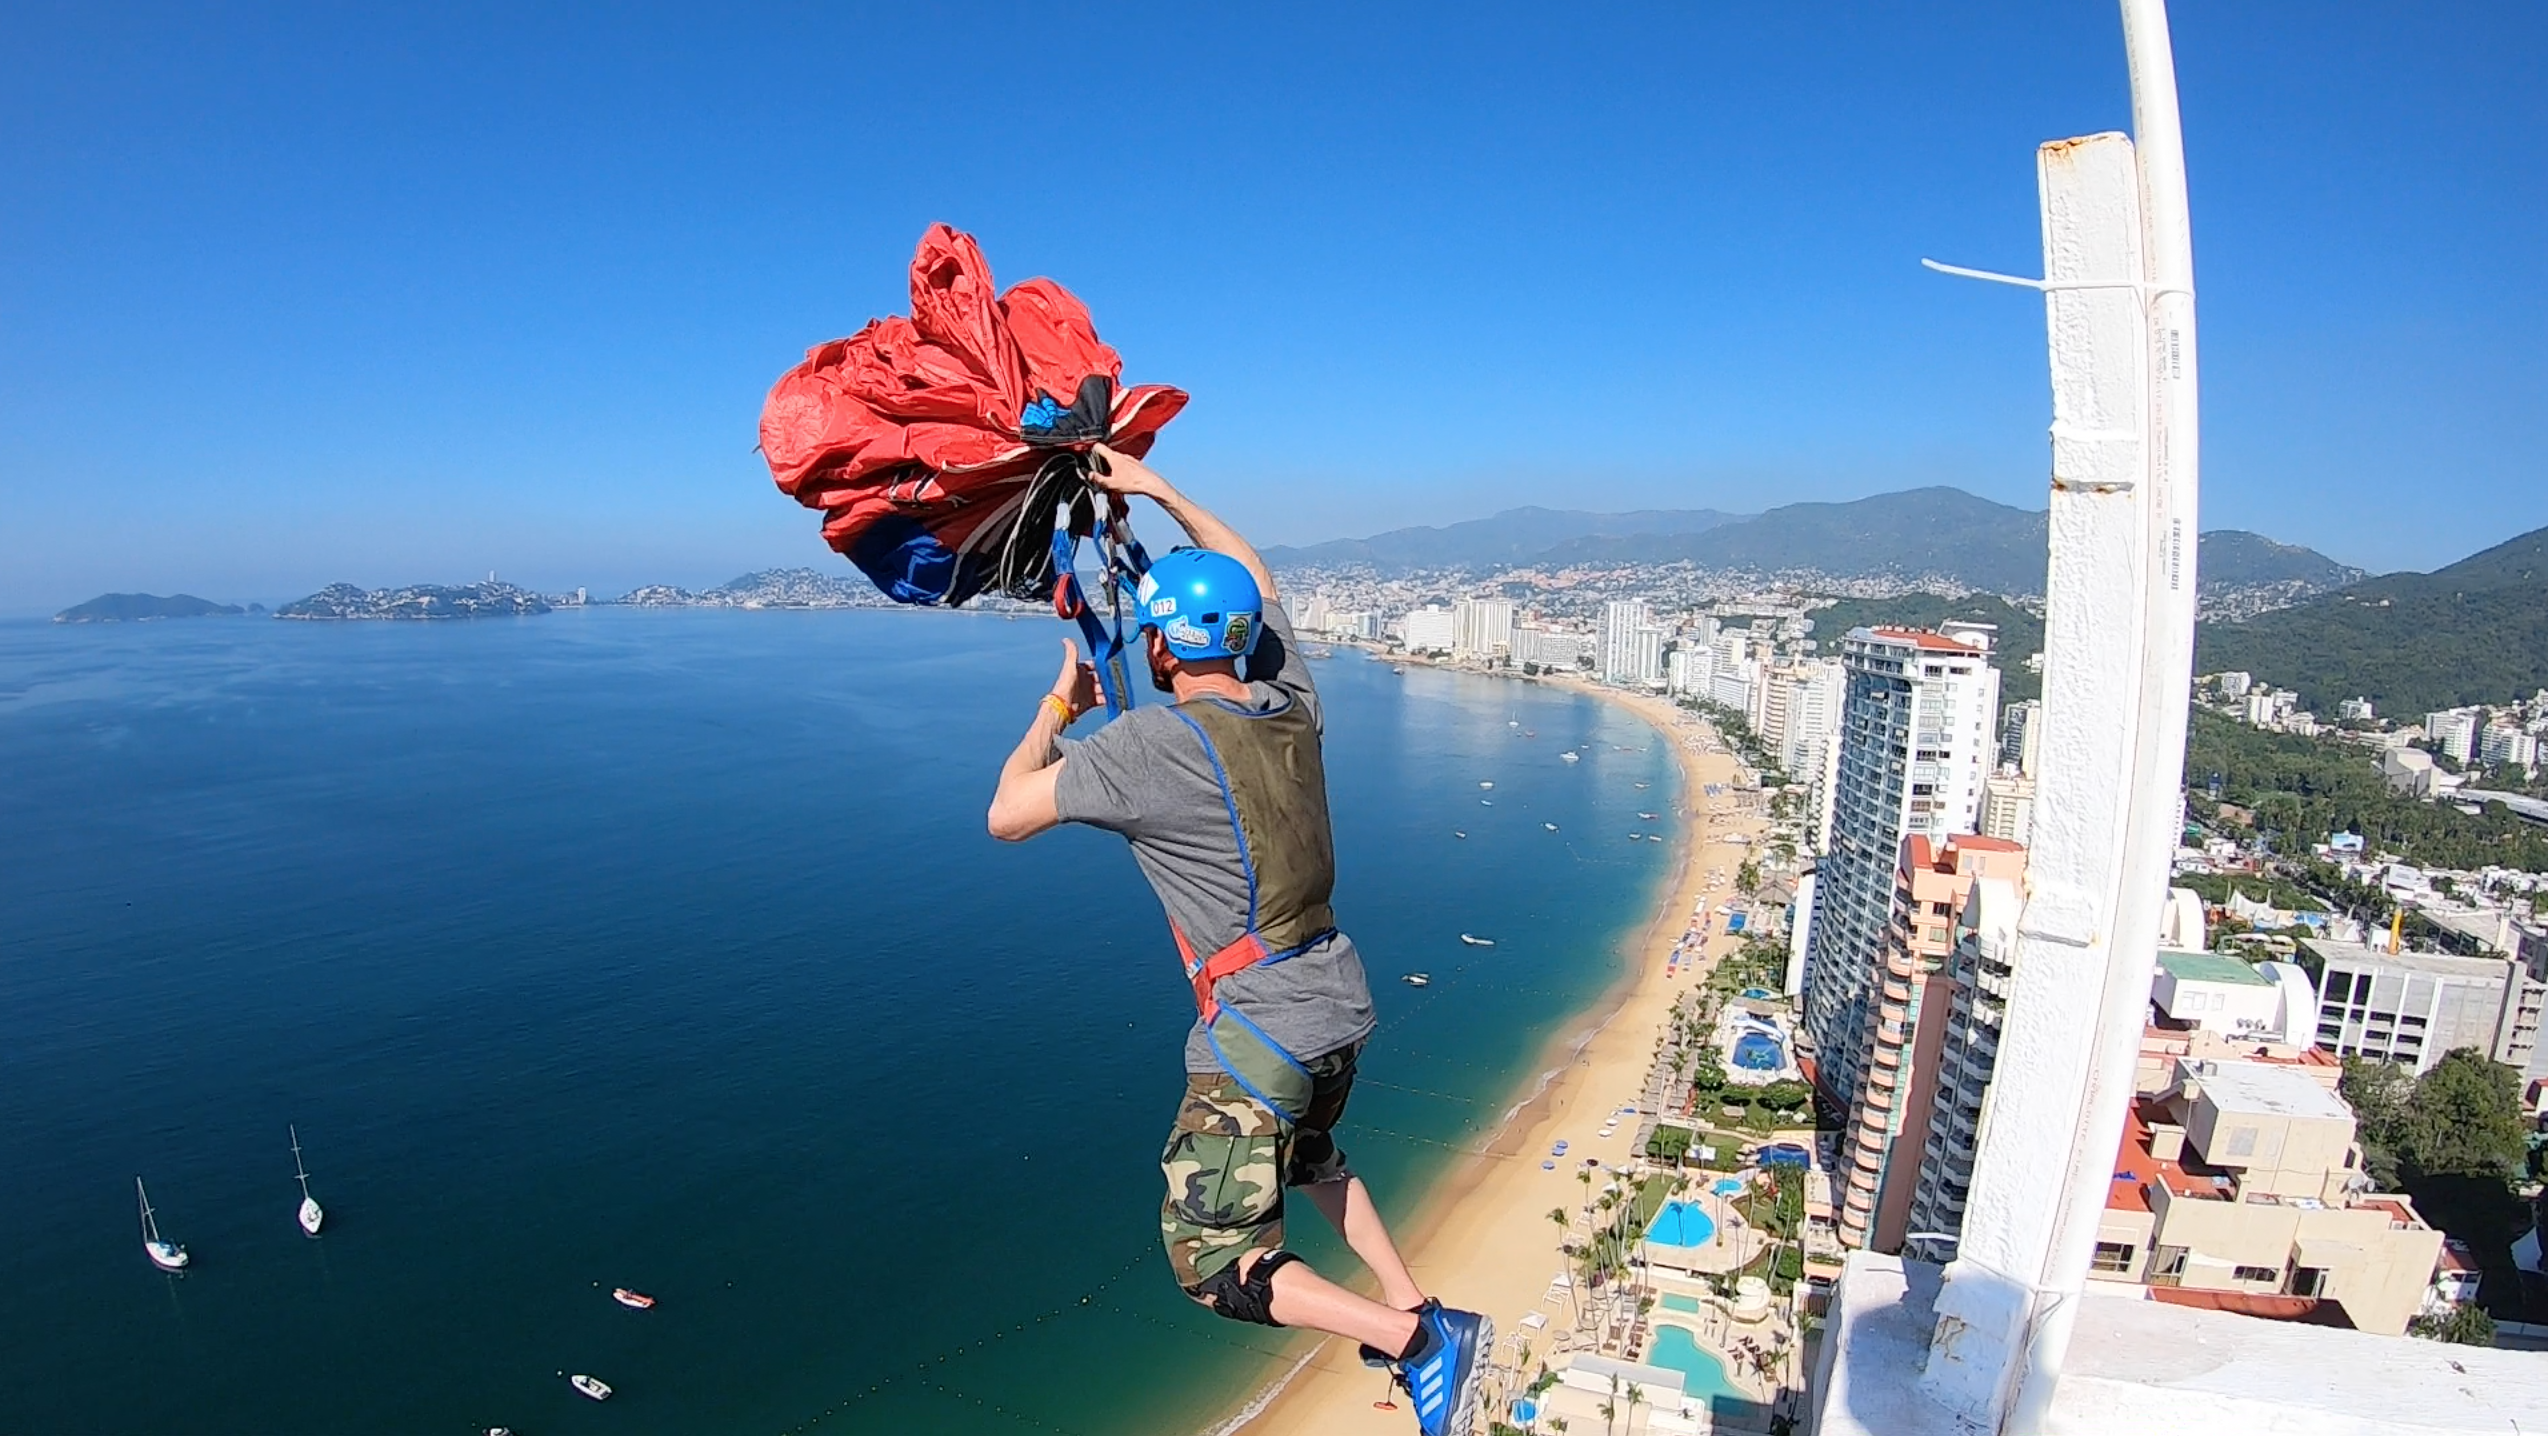 Sean Chuma performs an unpacked Base jump from a Building